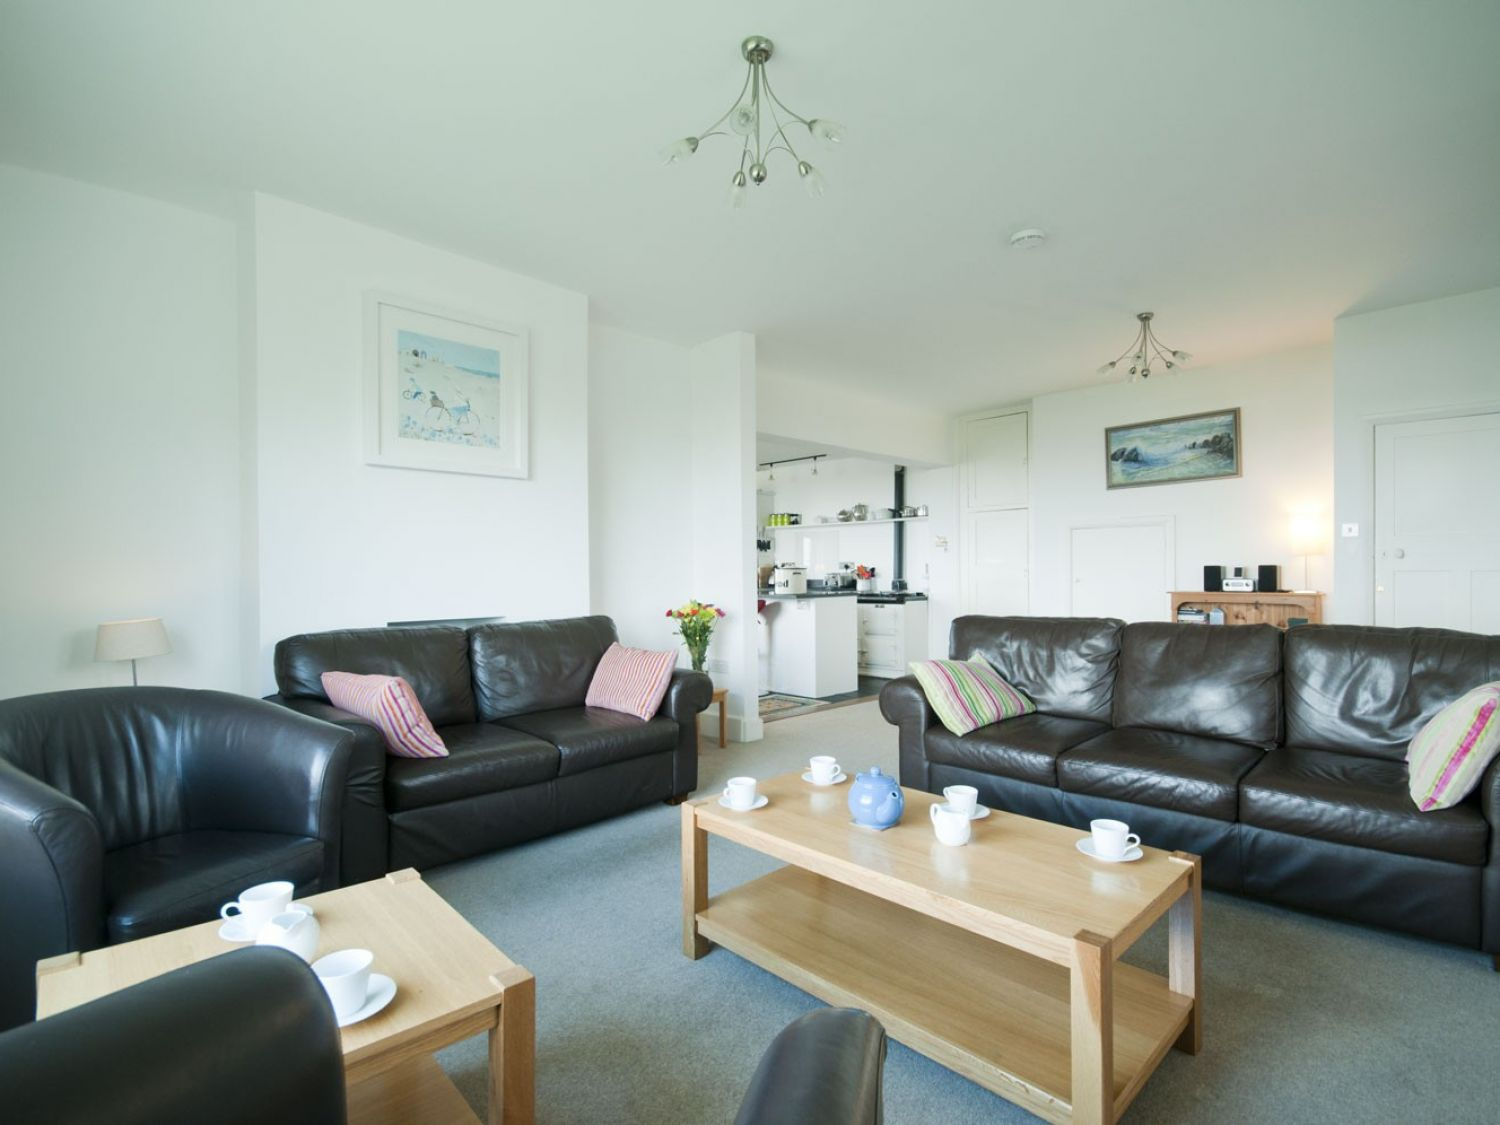 Pentreath in Crantock - sleeps 8 people